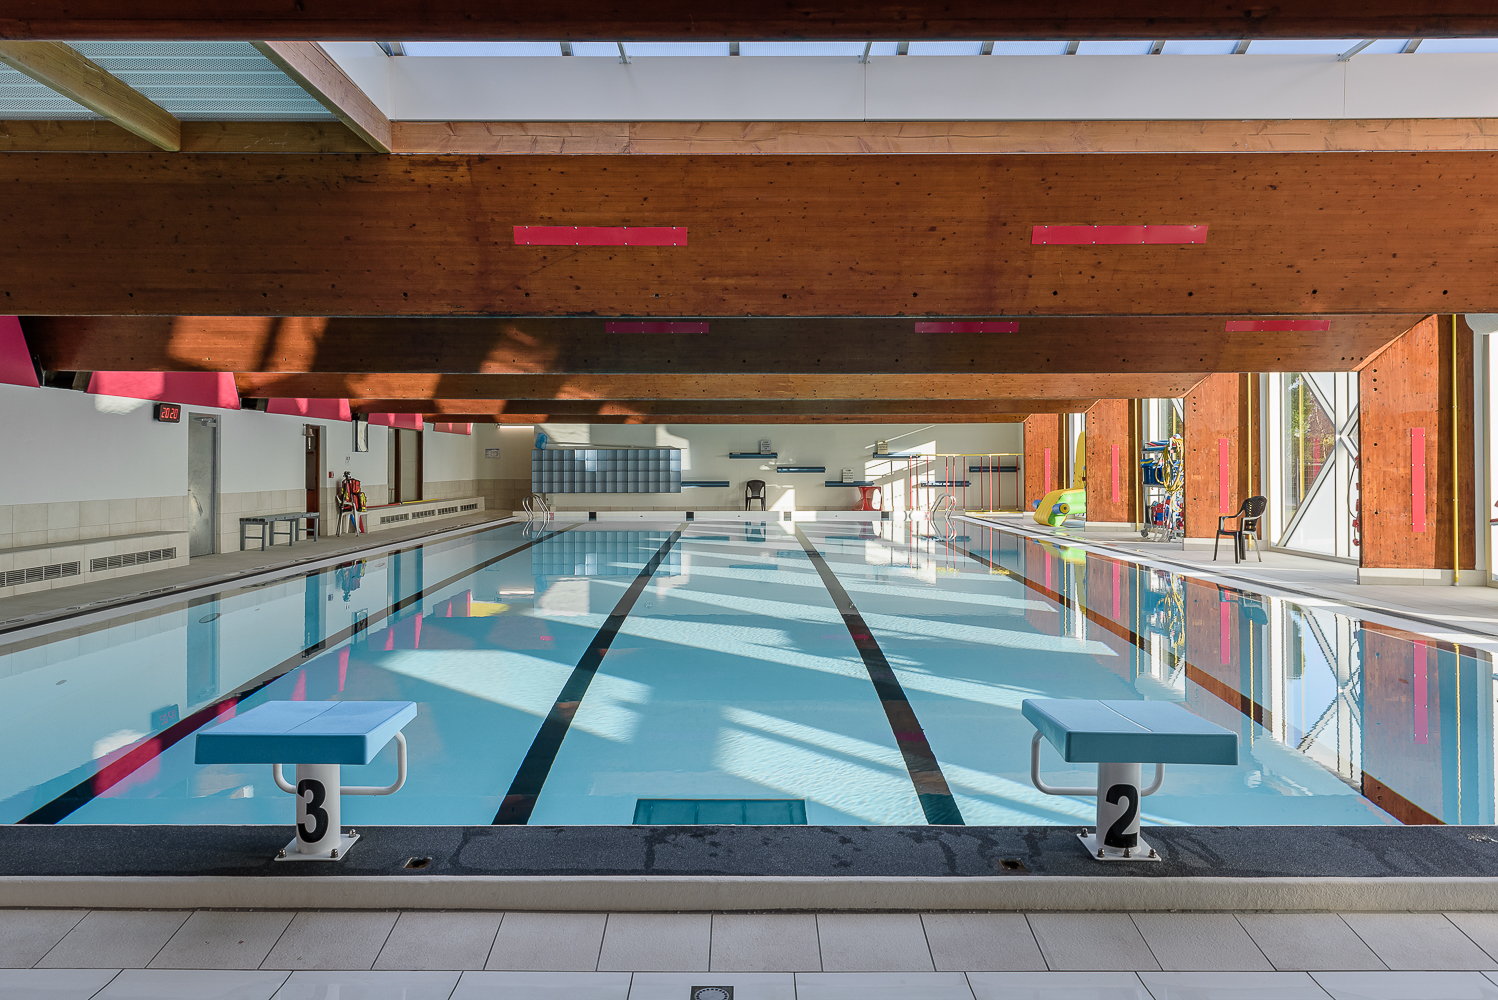 photographe d'architecture ©INTERVALphoto : LAB architectes , piscine de Tréguier (22)